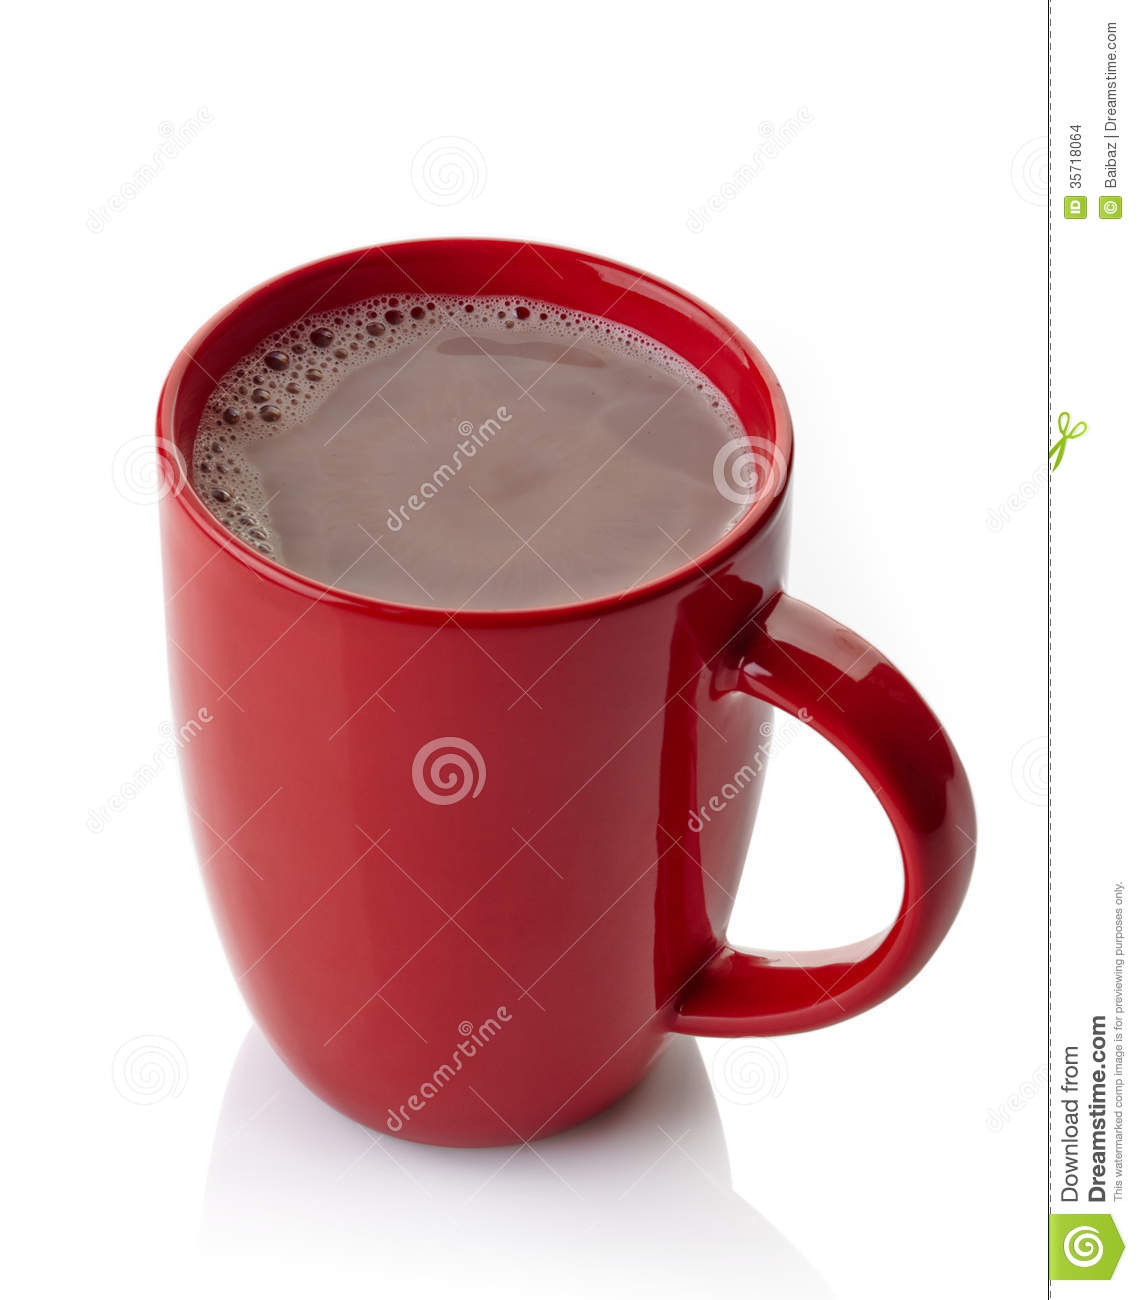 Red mug of hot chocolate drink isolated on white background.